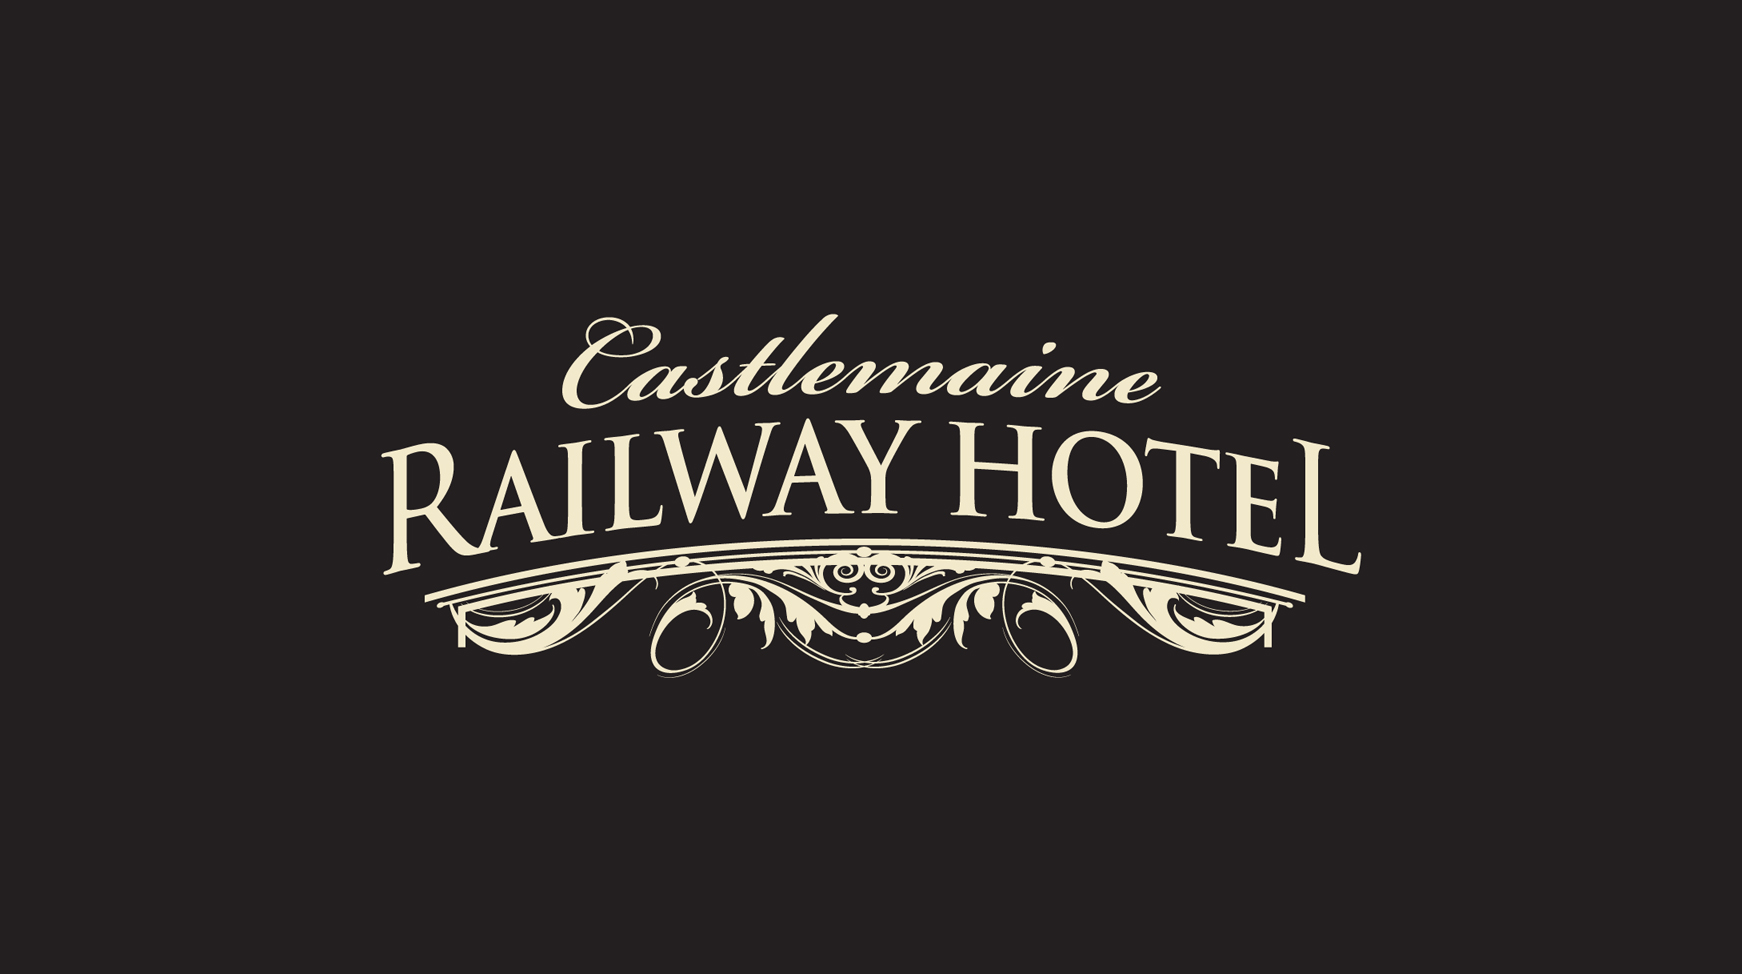 Railway Hotel Castlemaine - Accommodation Bookings